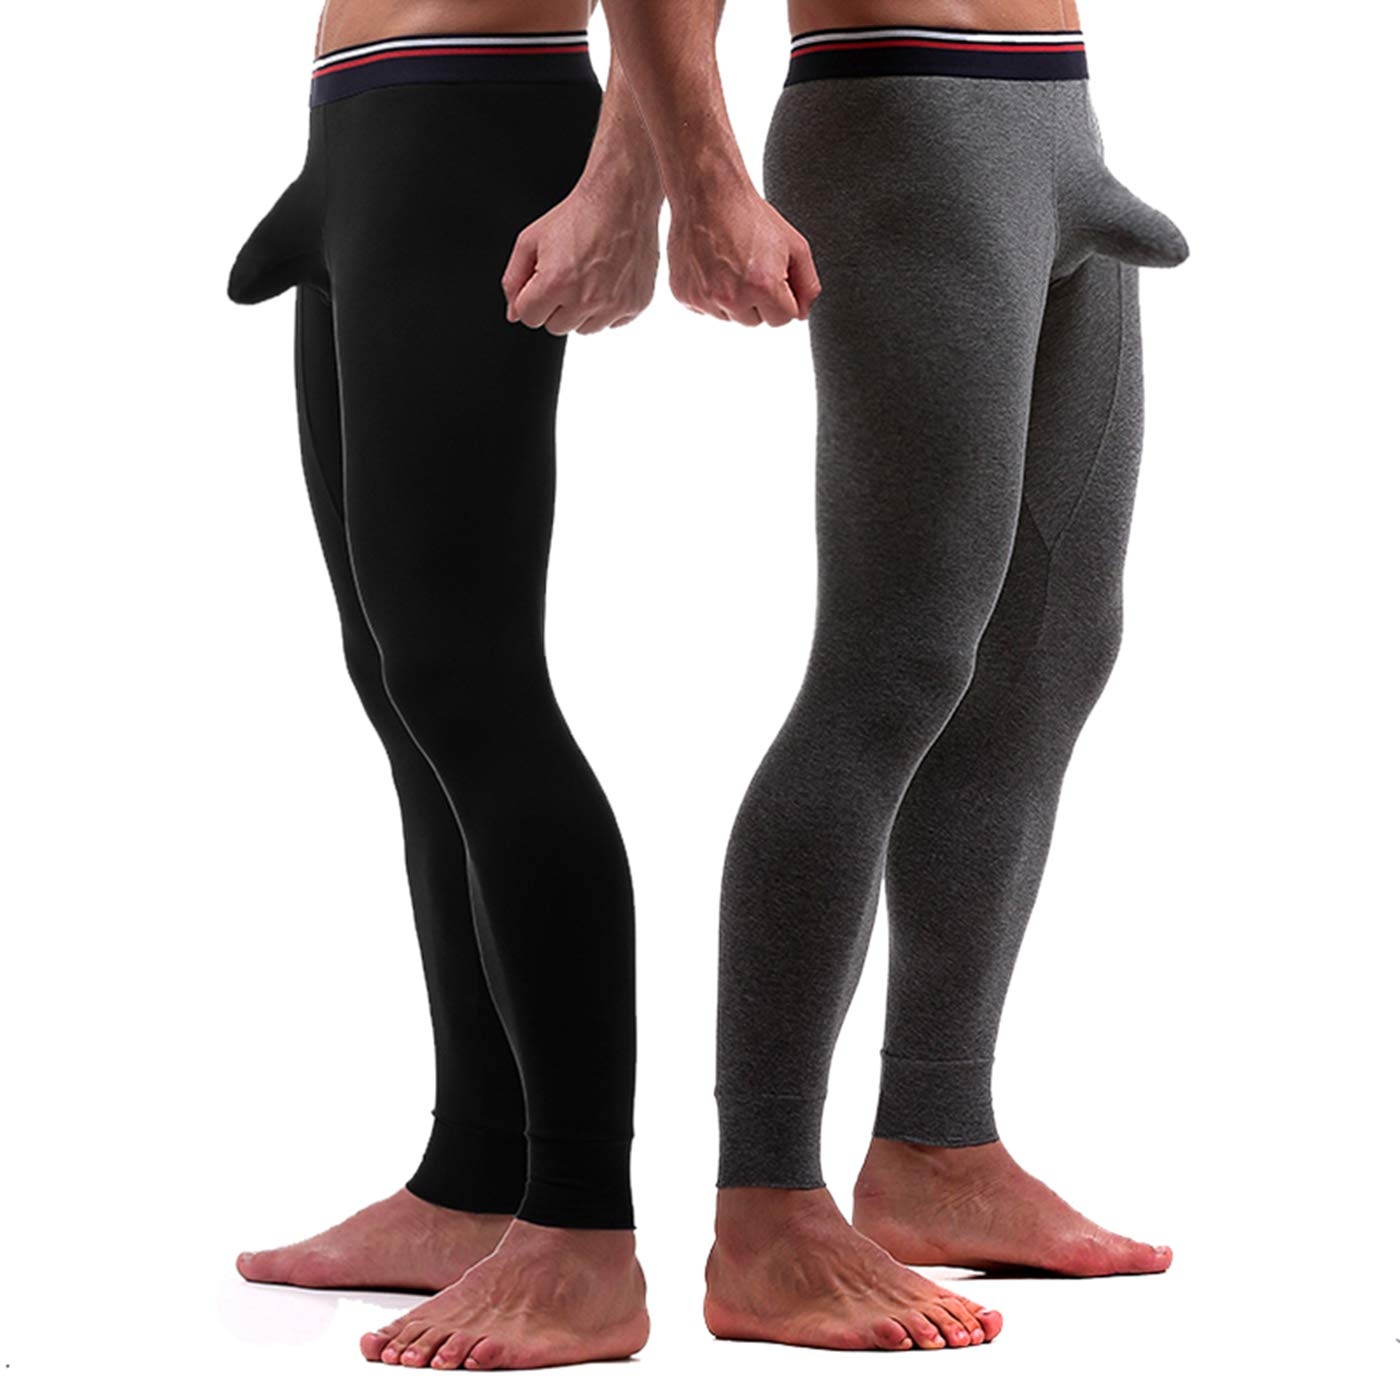 Ouruikia Men's Thermal Underwear Pants Long Johns Bottom Thermal Pants Separate Pouch (Black + Dark Grey, US L) by Ouruikia